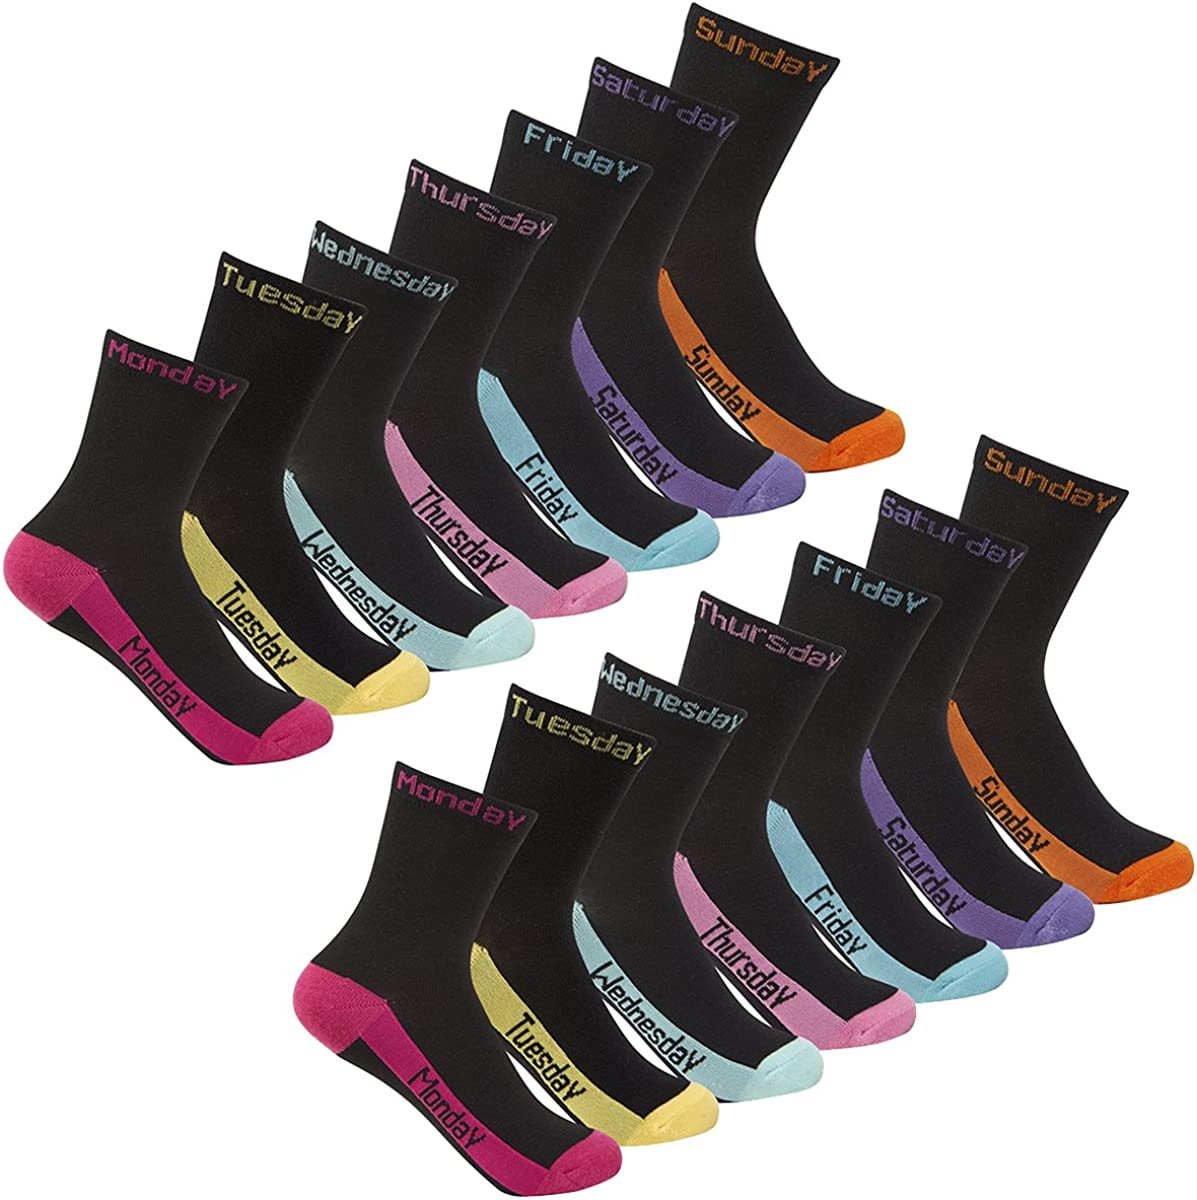 Girls Days of The Week Socks Novelty Trainer Liners 14 Pair Street Essentials